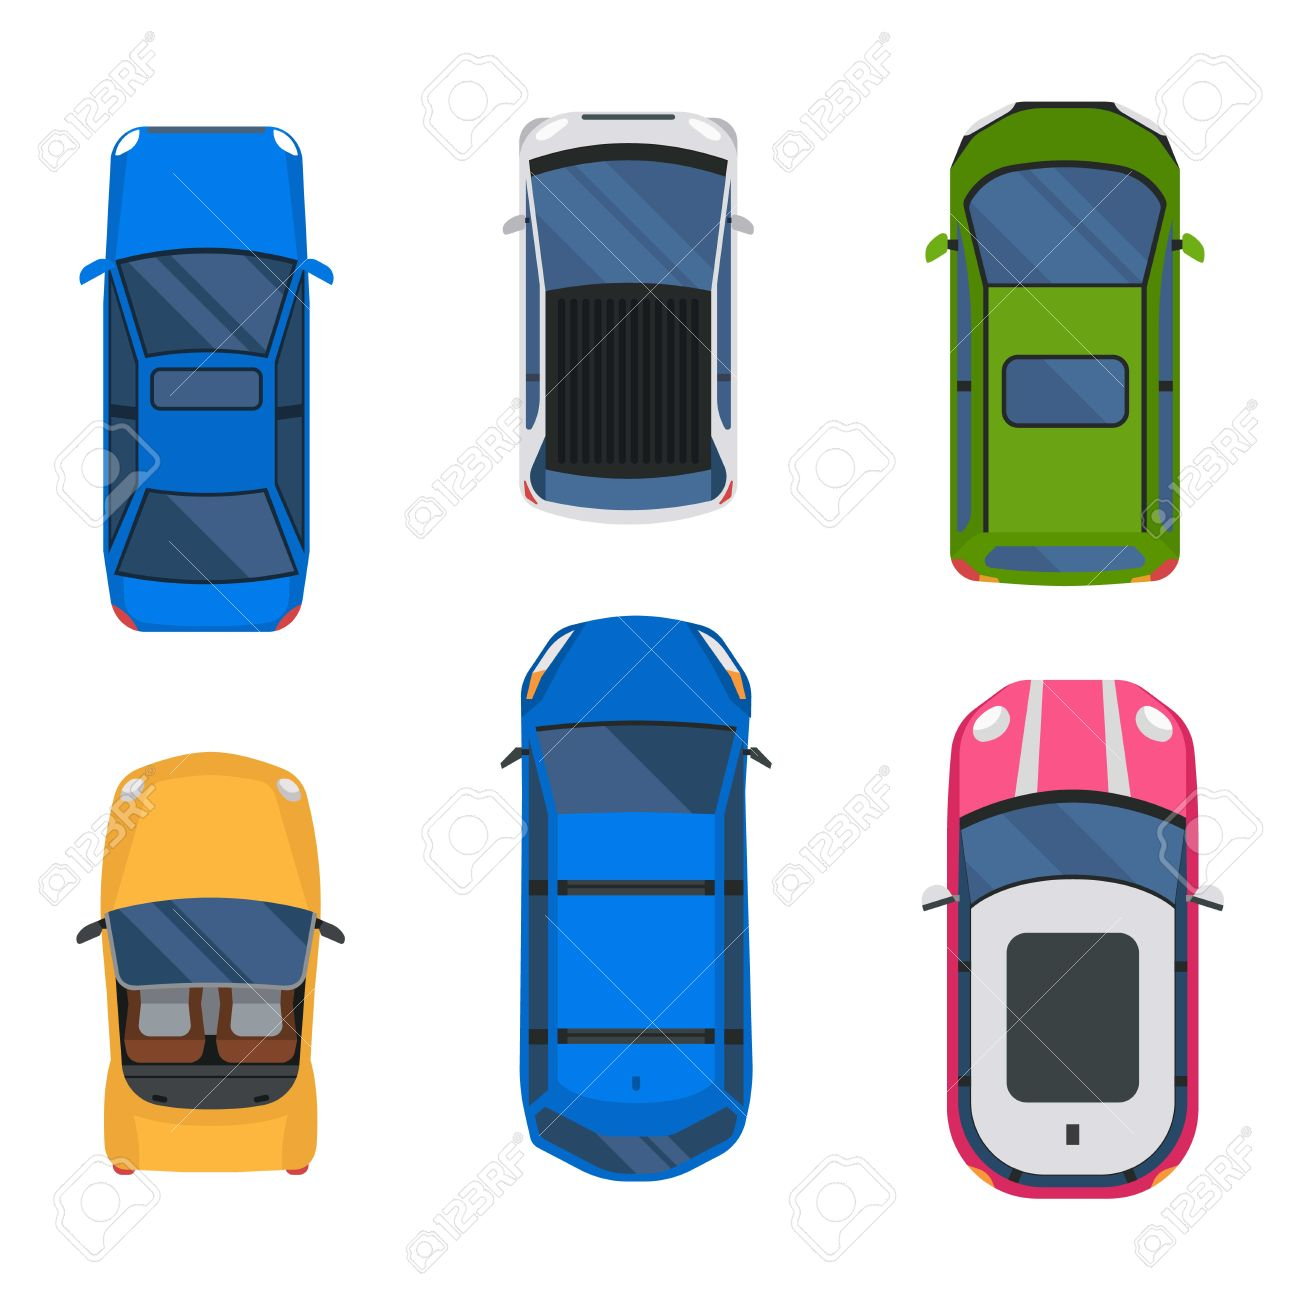 1300x1300 Vector Cars Icon Set. From Above Car Top View. Includes Sedan